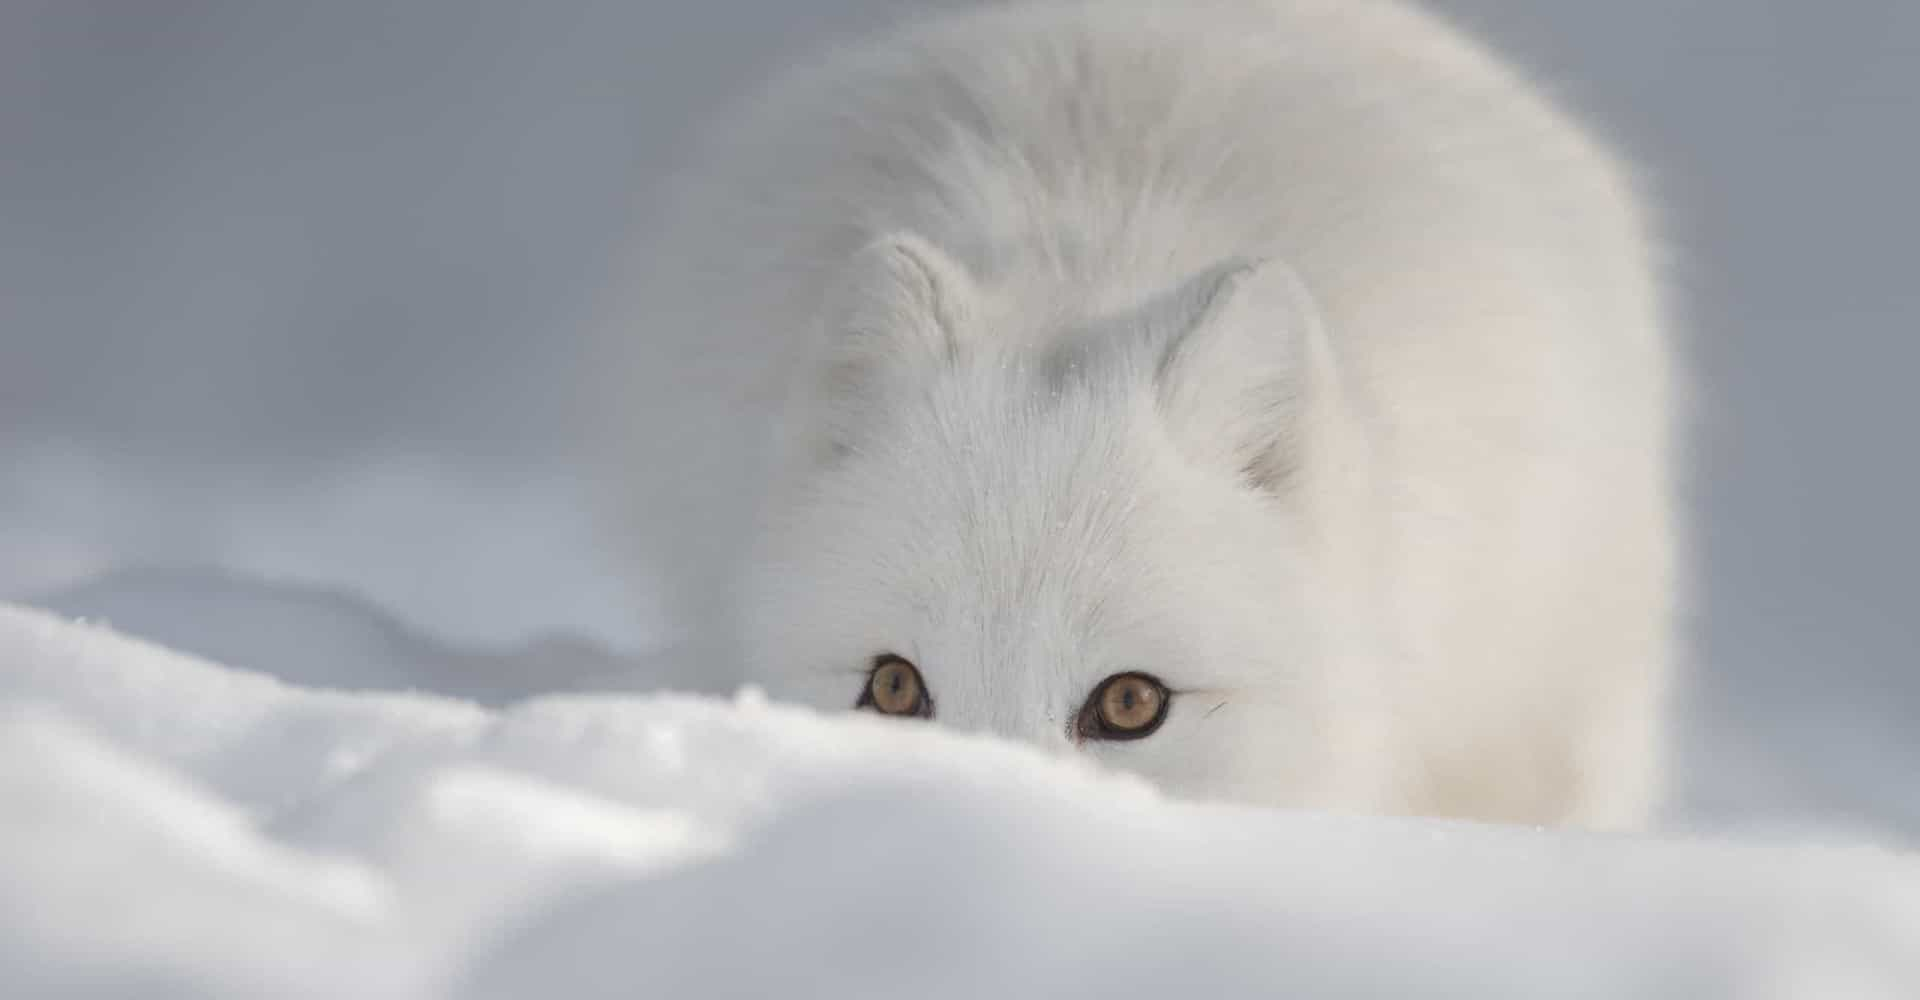 The majestic animals that call the Arctic home